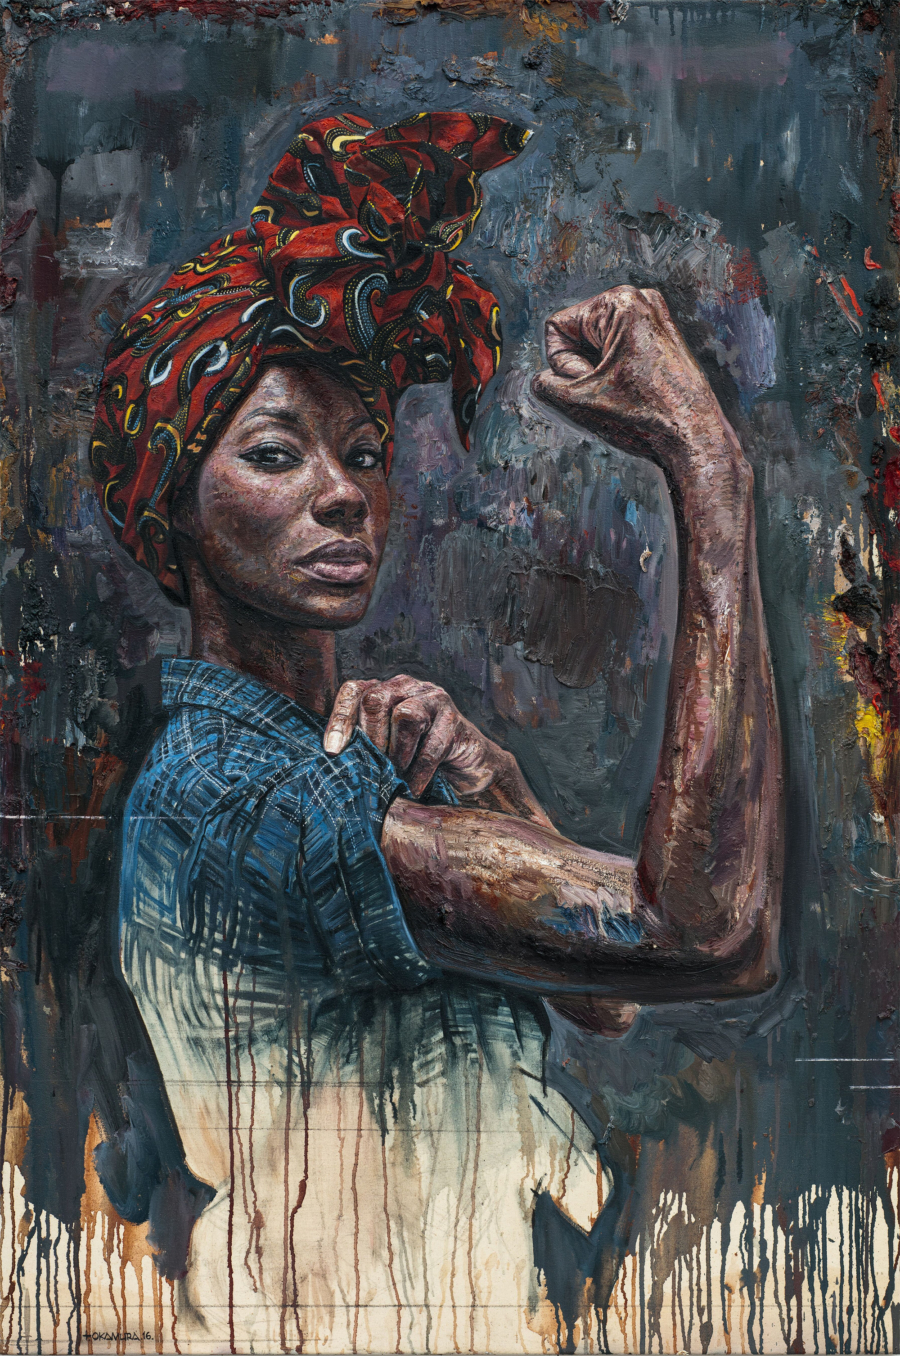 Tim Okamura, African American Art, Black Art, KOLUMN Magazine, KOLUMN, KINDR'D Magazine, KINDR'D, Willoughby Avenue, Wriit,